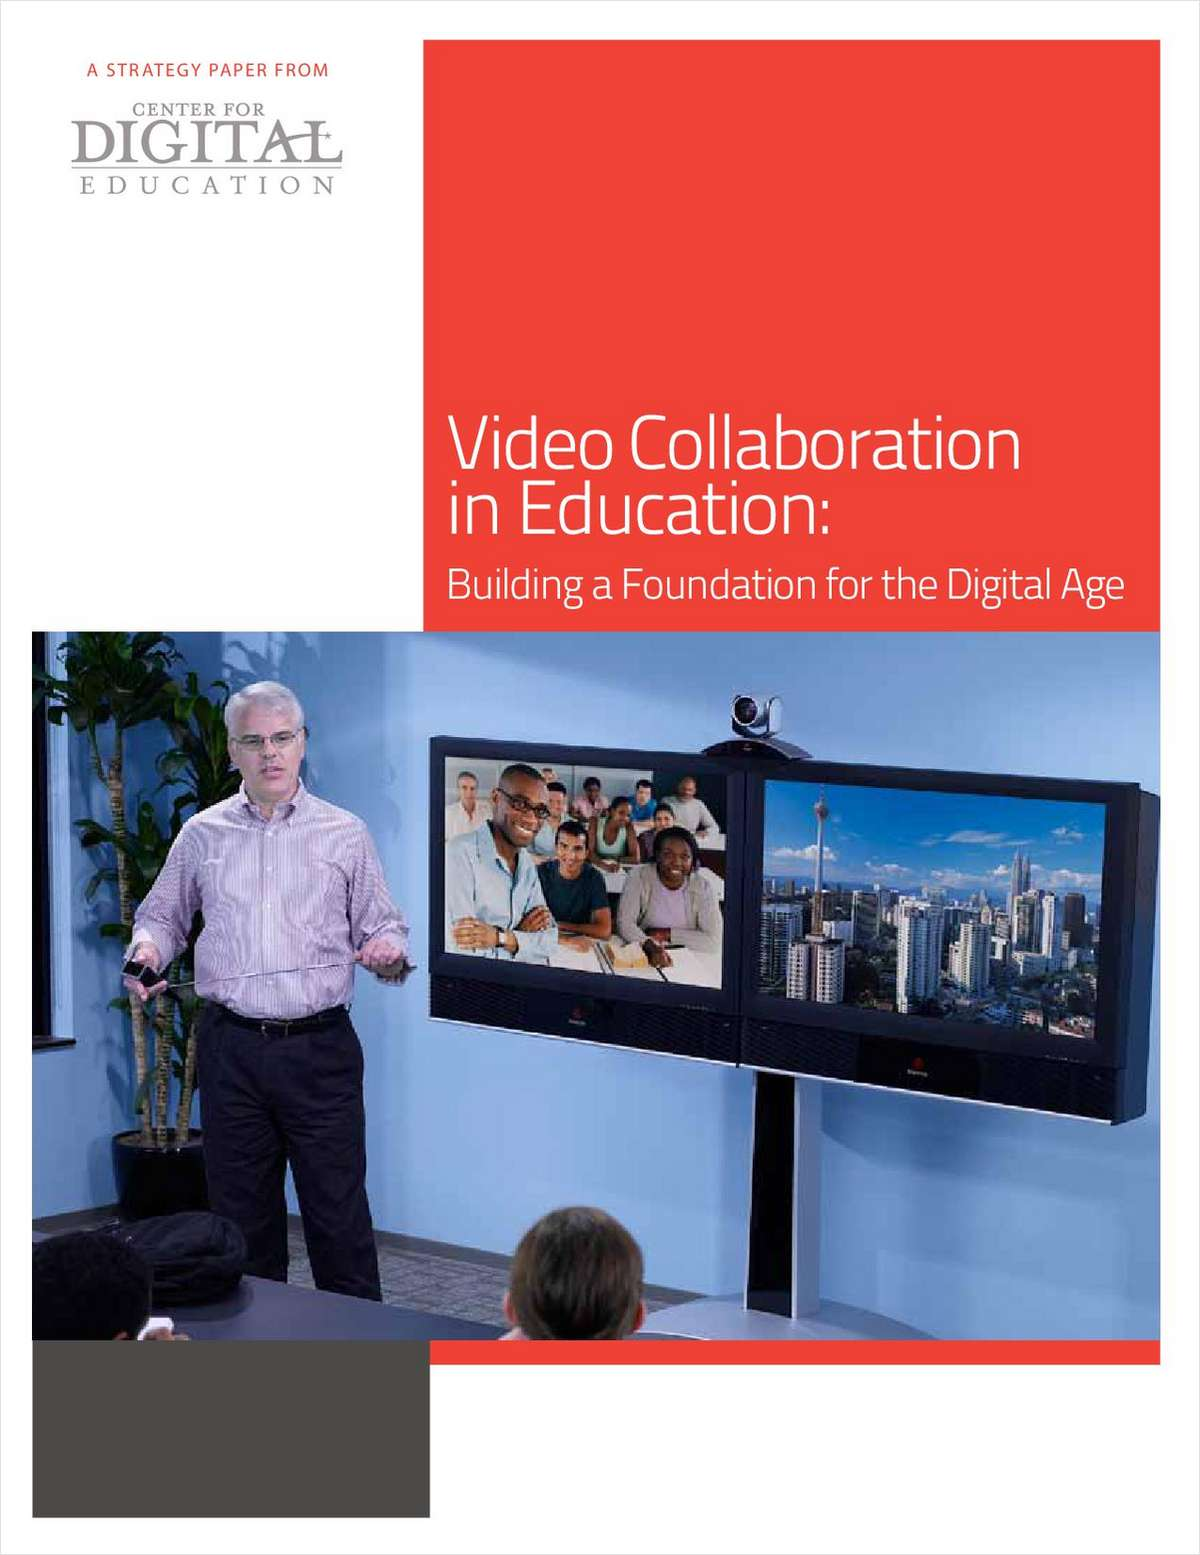 Video Collaboration in Education: Building a Foundation for the Digital Age